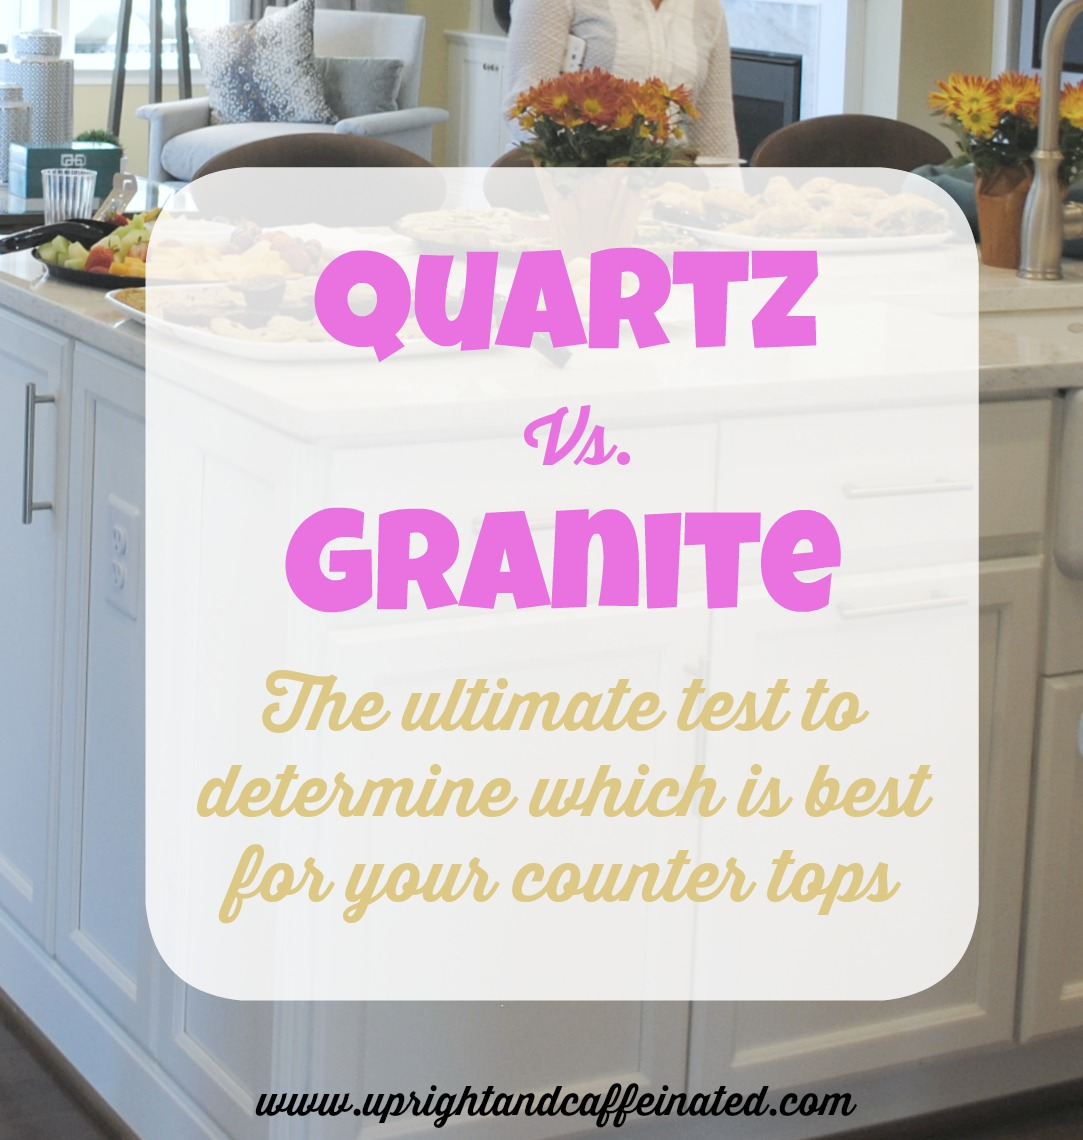 The most comprehensive comparison of the durability between quartz and granite counter tops. The ultimate test of quartz vs. granite! I was shocked to see the results of the wine test!